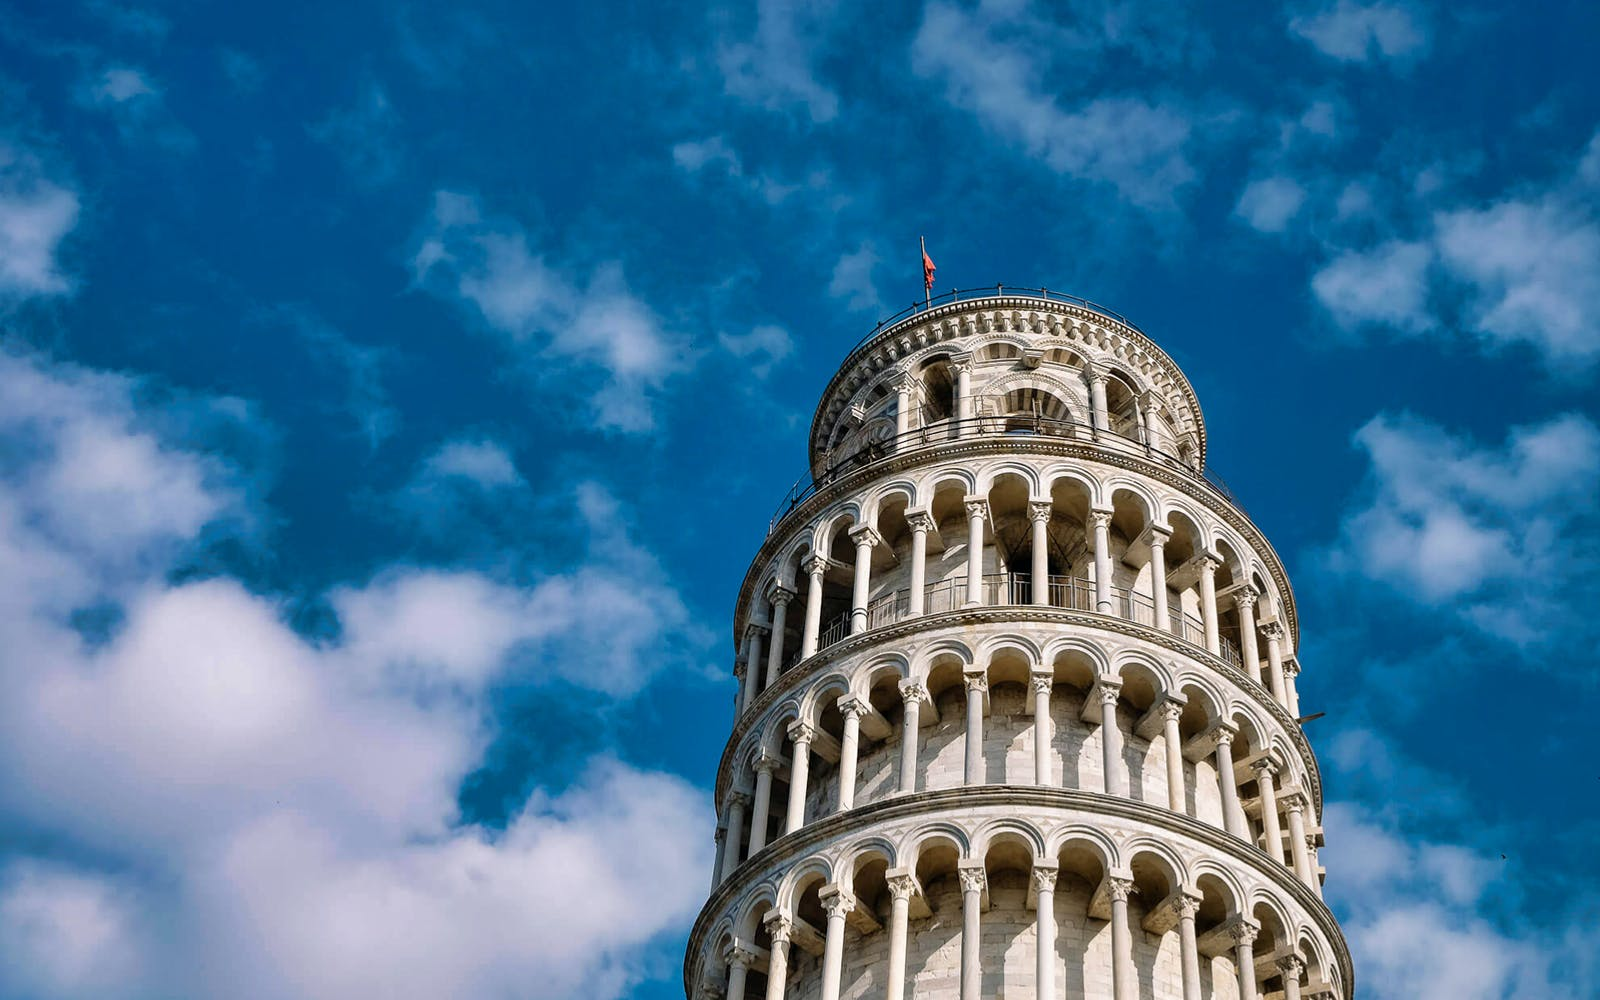 Guided Tour of Pisa with Skip the Line Access to the Leaning Tower